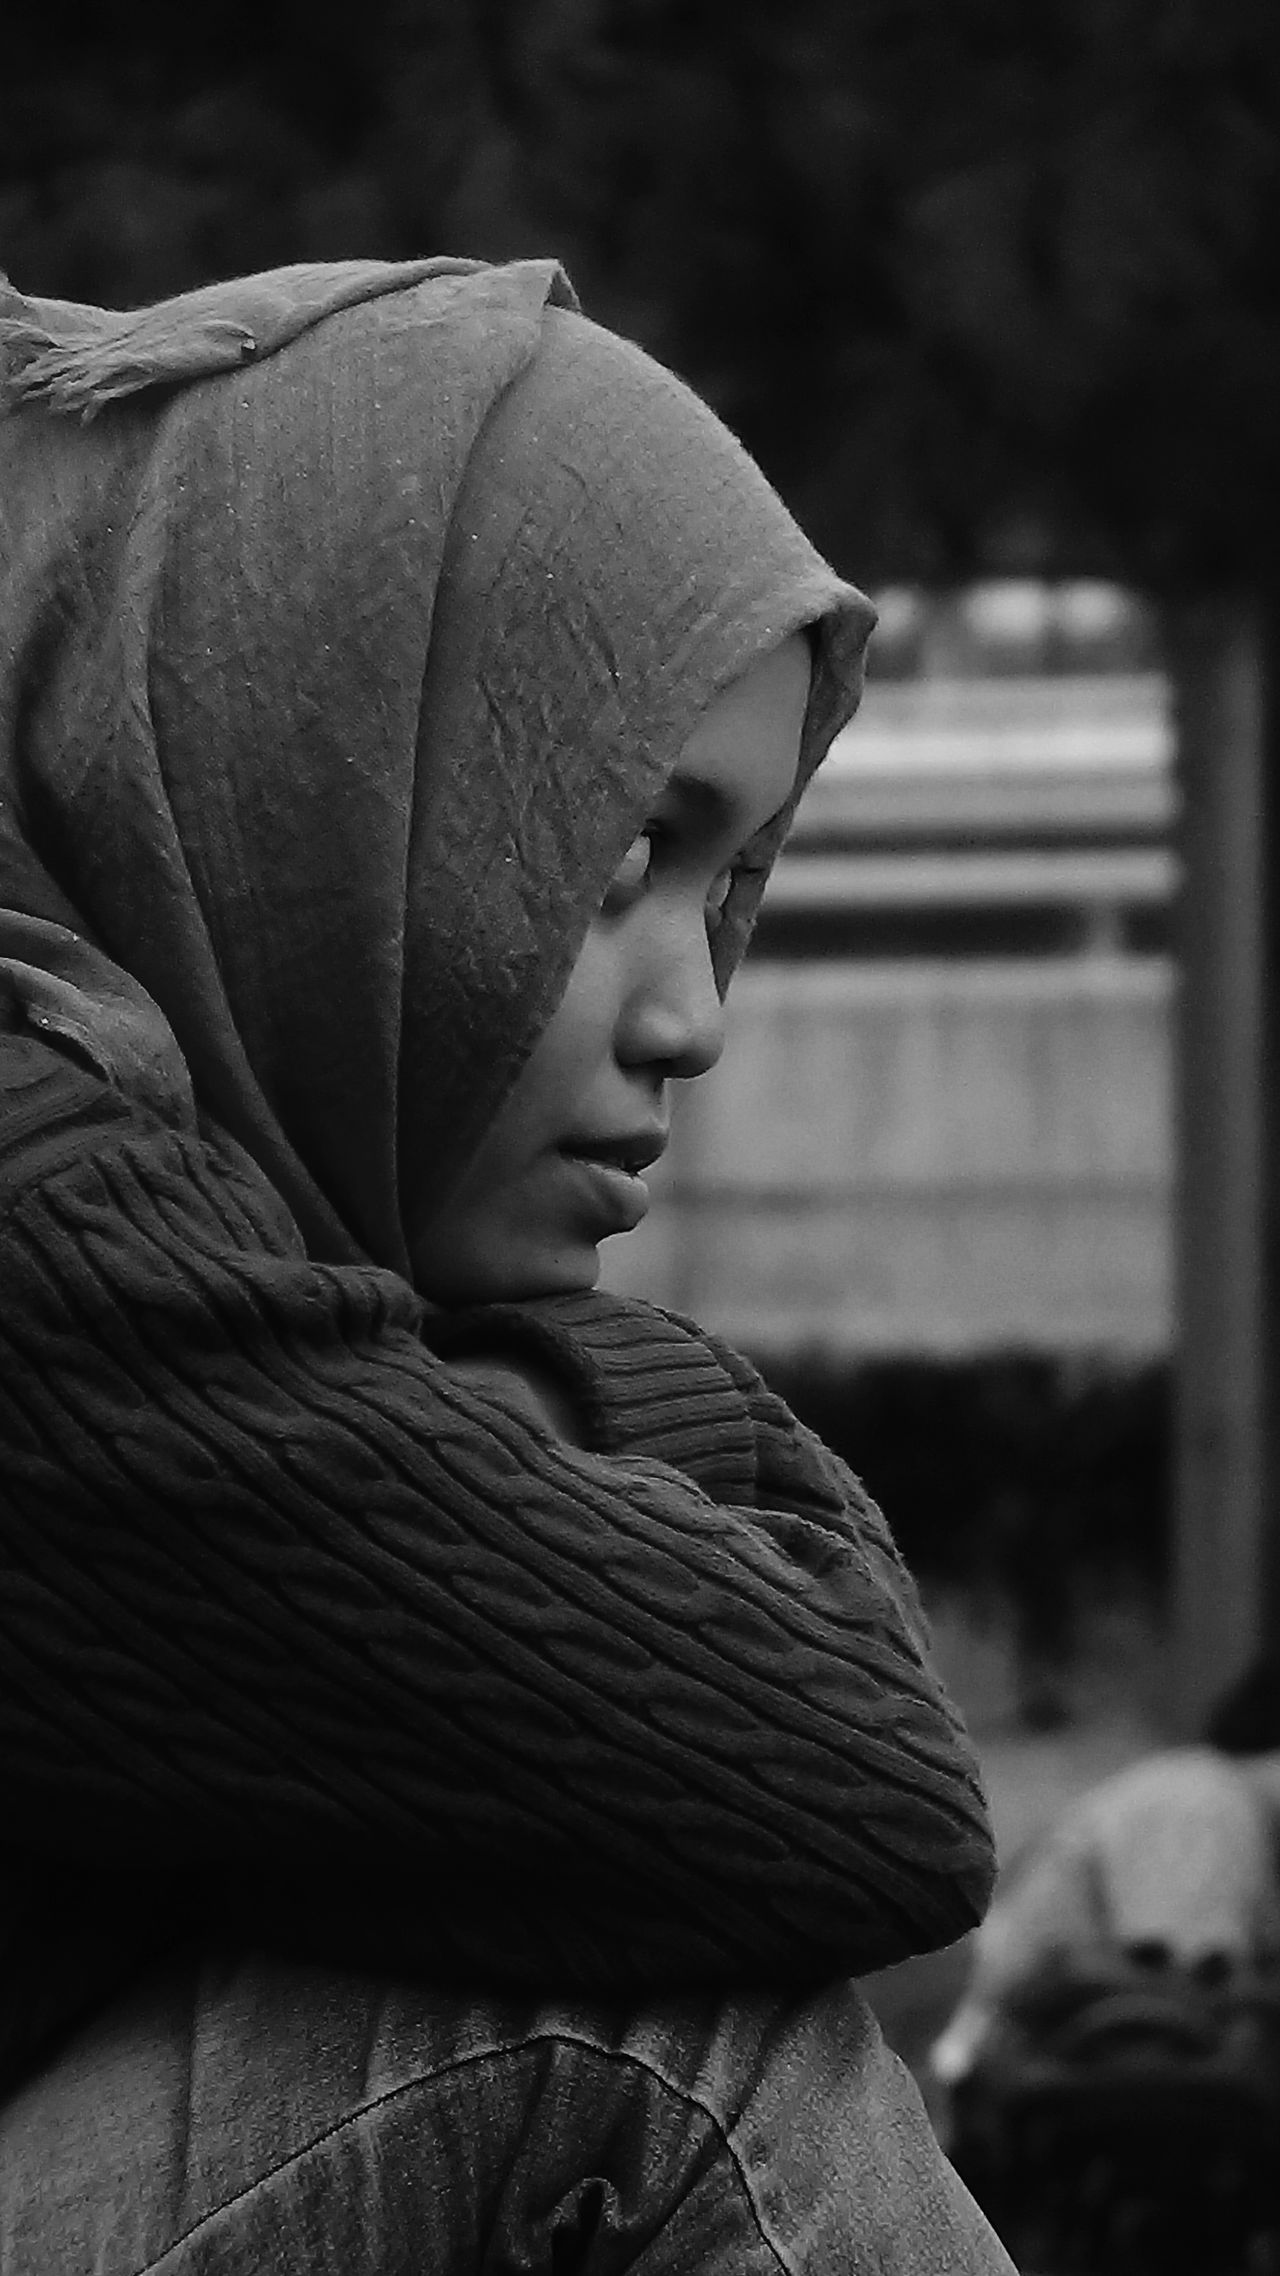 See the different of life One Person Headshot Outdoors People Day Only Women Close-up Scarf Photography Photooftheday EyeEm Best Shots EyeEmBestPics EyeEm Gallery Blackandwhite Bnw_collection Visualsoflife ExpressYourself